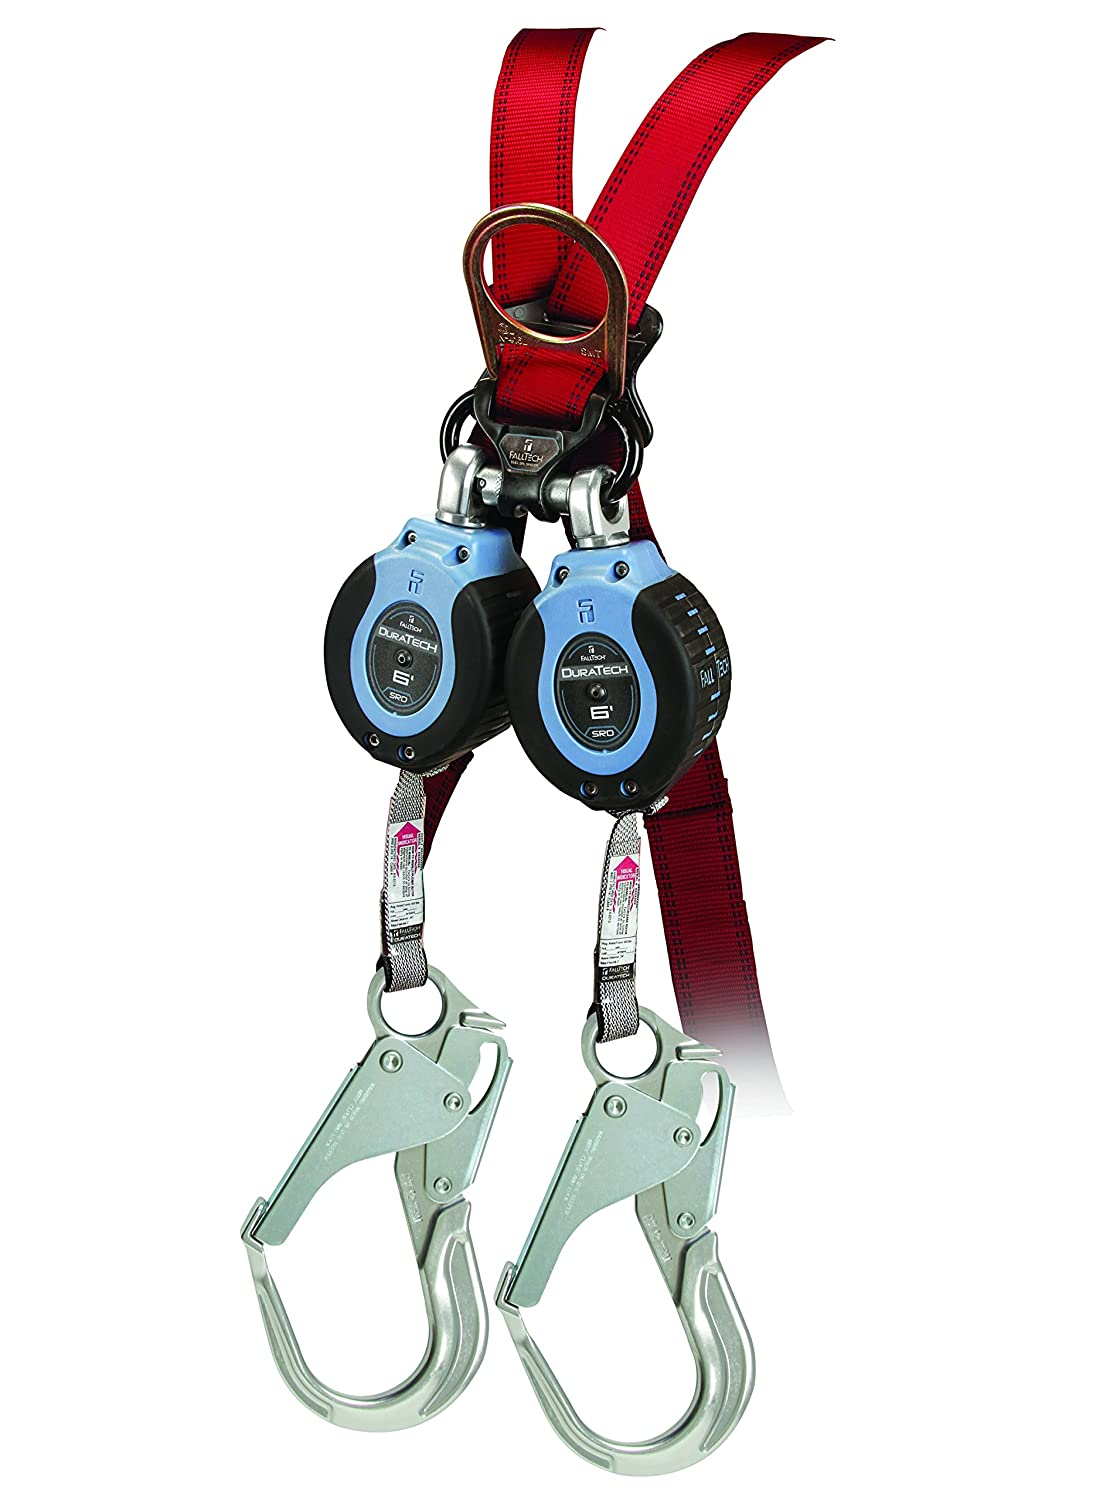 and Aluminum Rebar Hook leg-end Connectors Carabiner with Alignment Clip FallTech 82706TB5 Twin DuraTech 6 Compact Web SRL Twin 6 Blue//Black